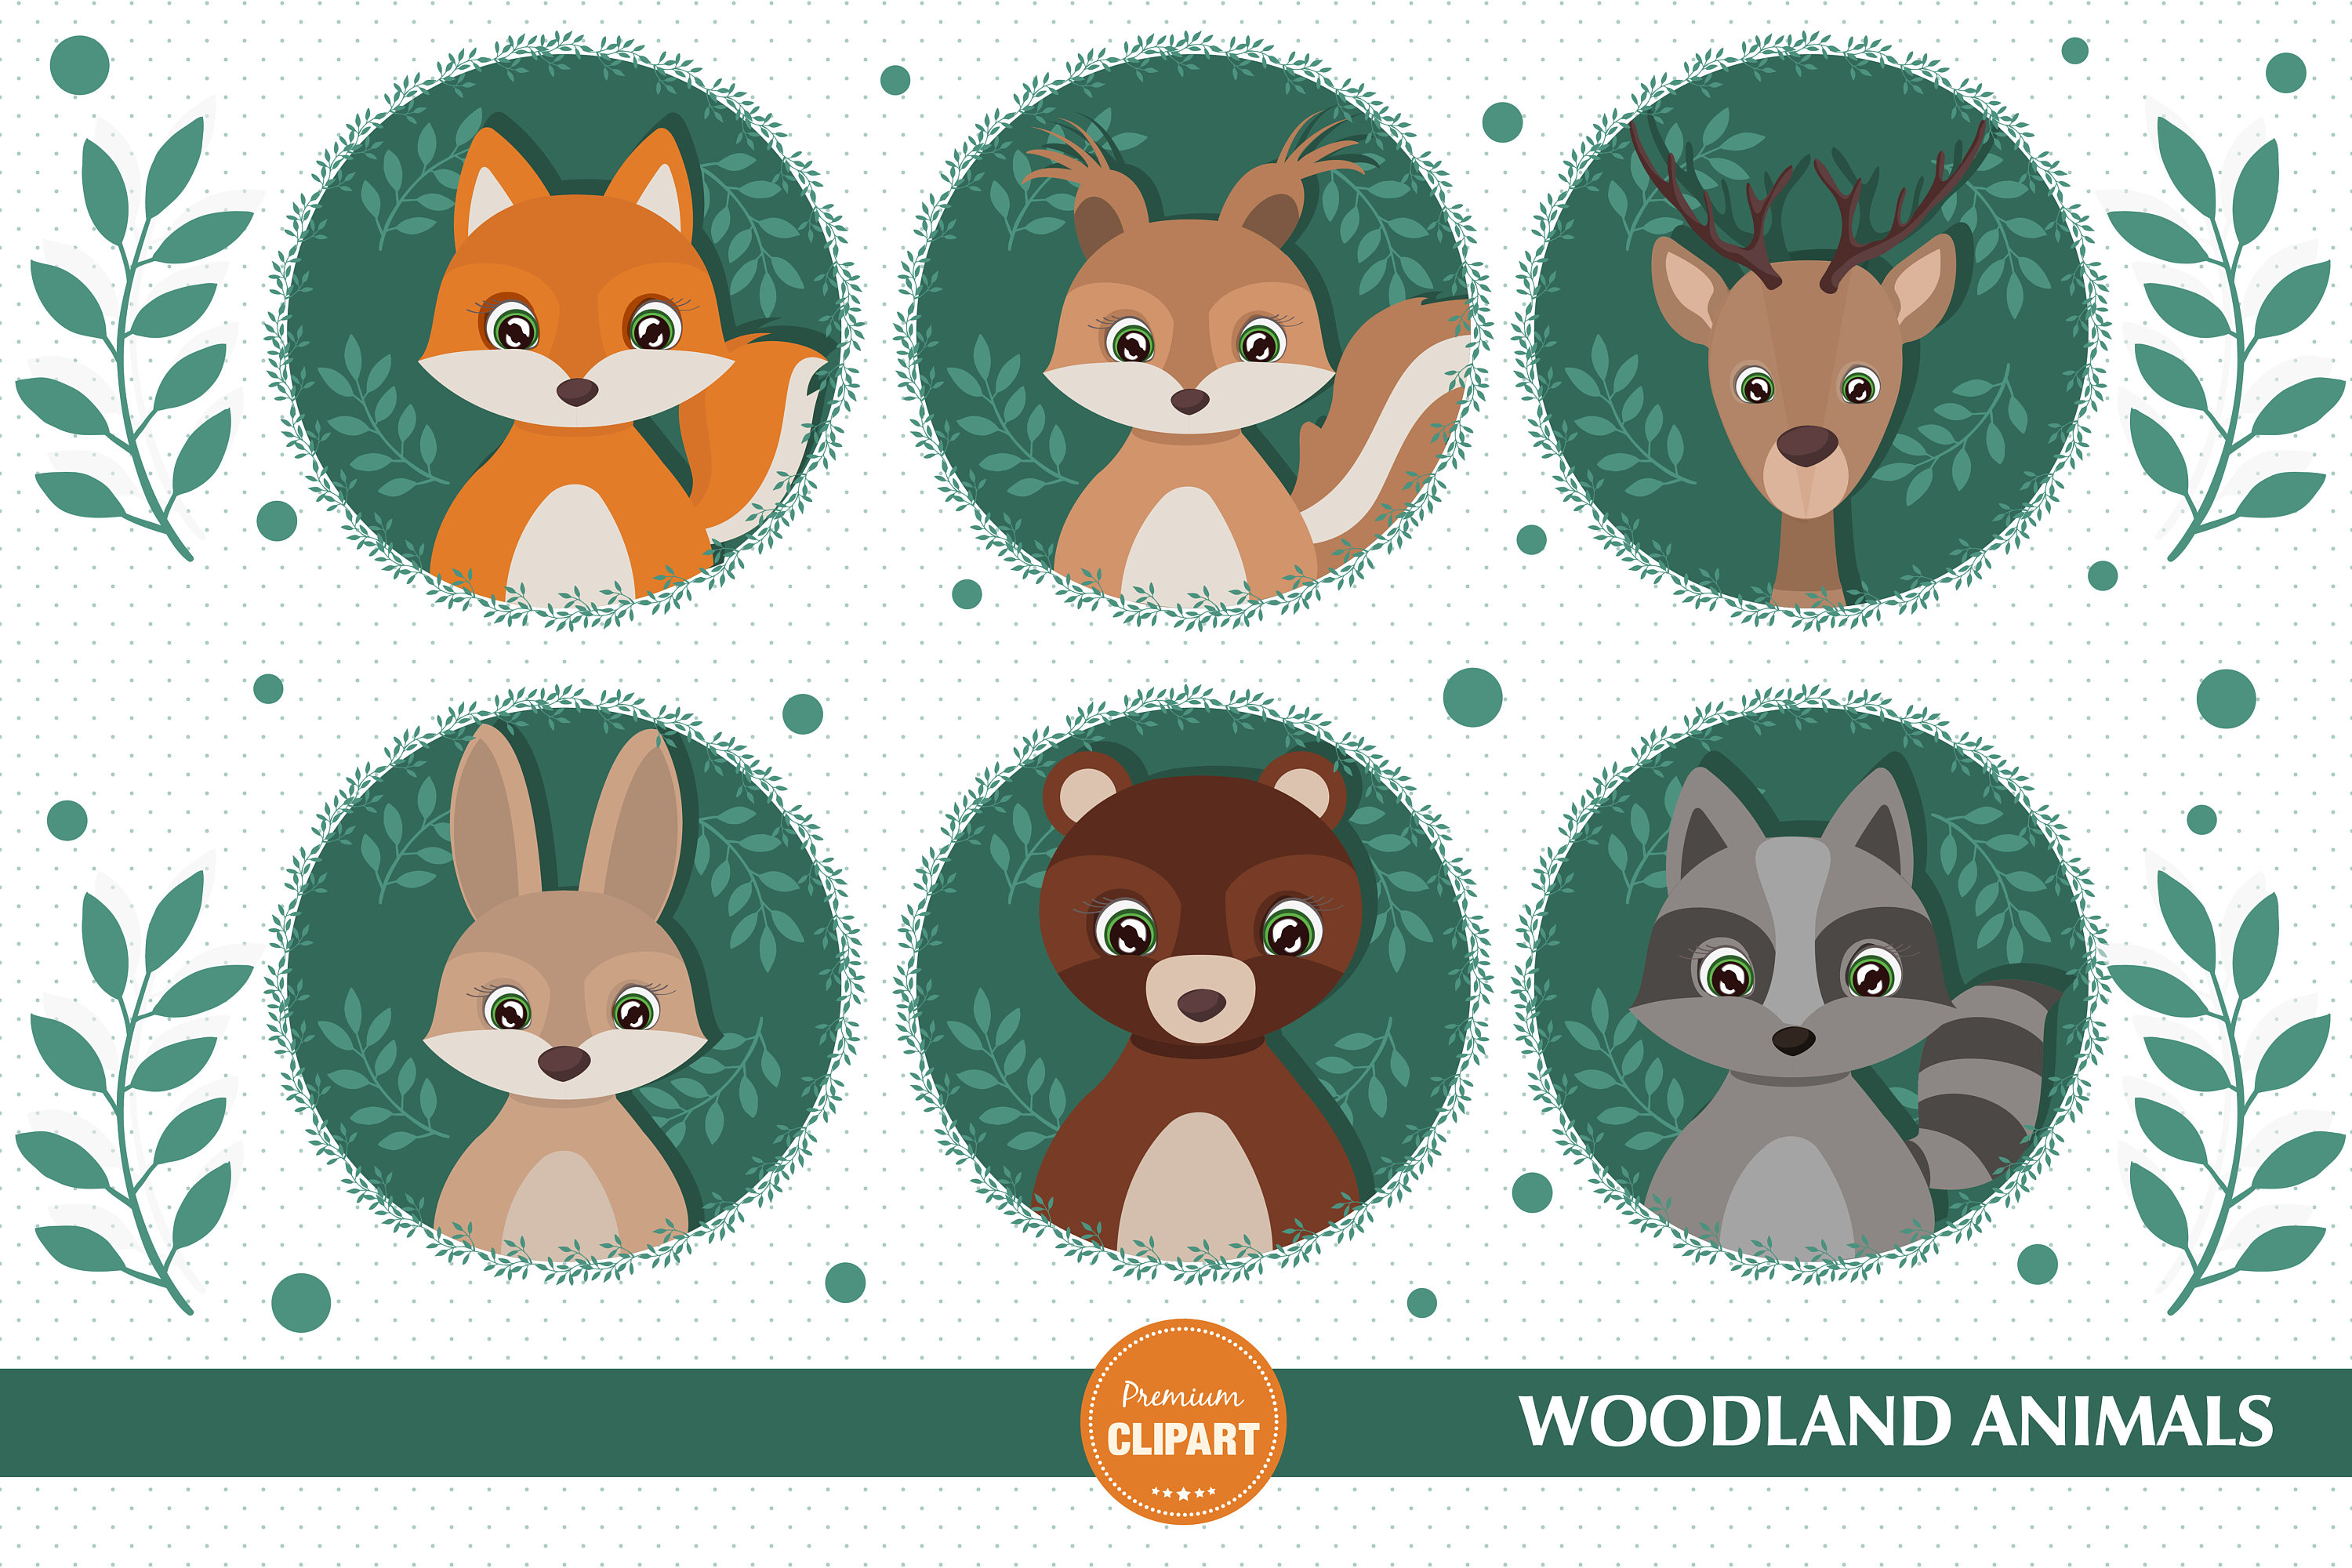 Woodland animals clipart, Woodland baby shower clipart, Baby animal, Forest  animal clip art, Woodland animals Clip art.